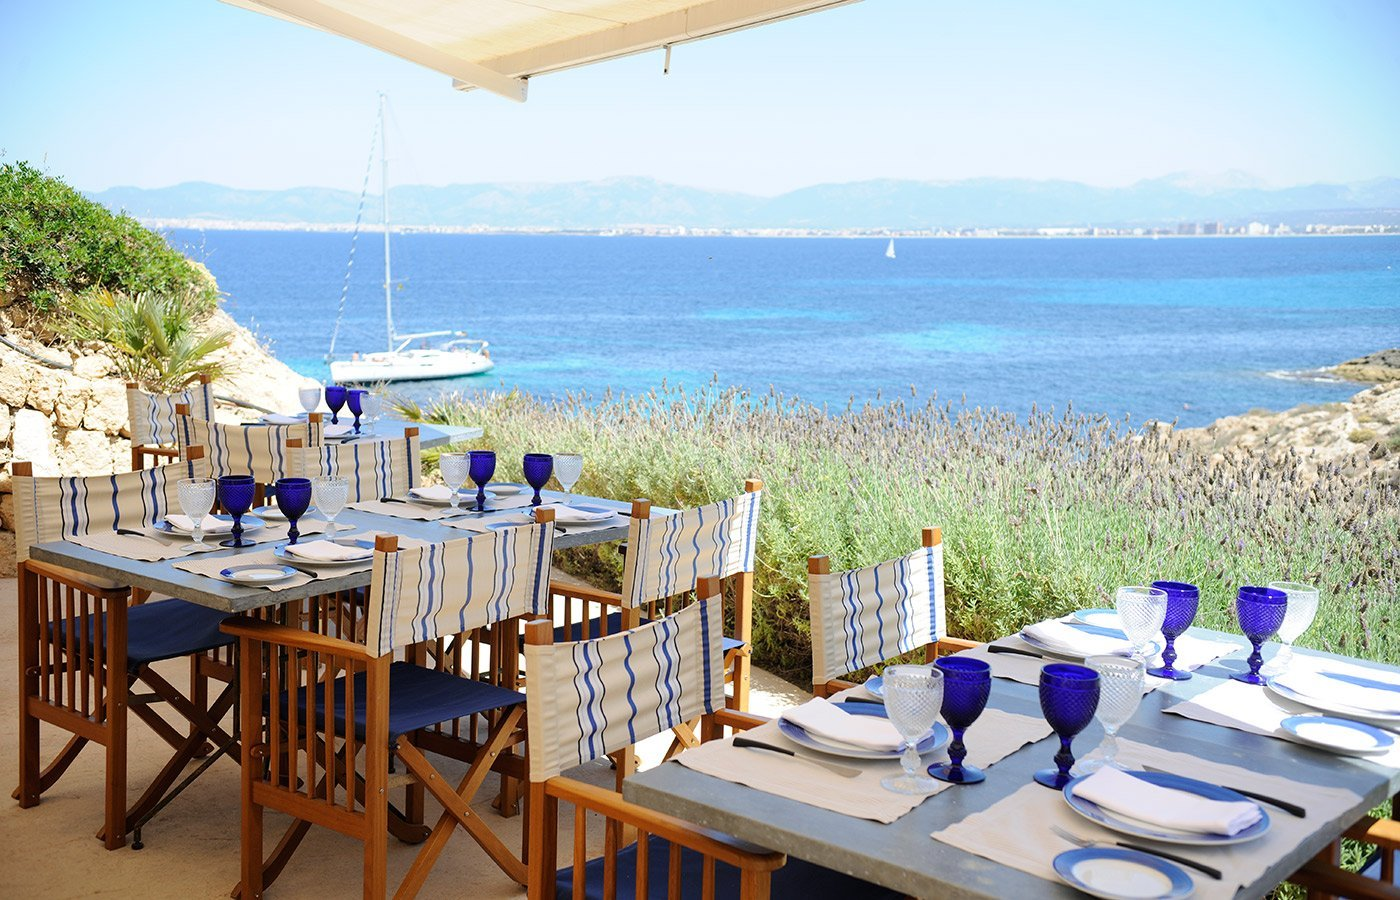 Lunch on the terrace at The Sea Club - Luxury Hotel Cap Rocat